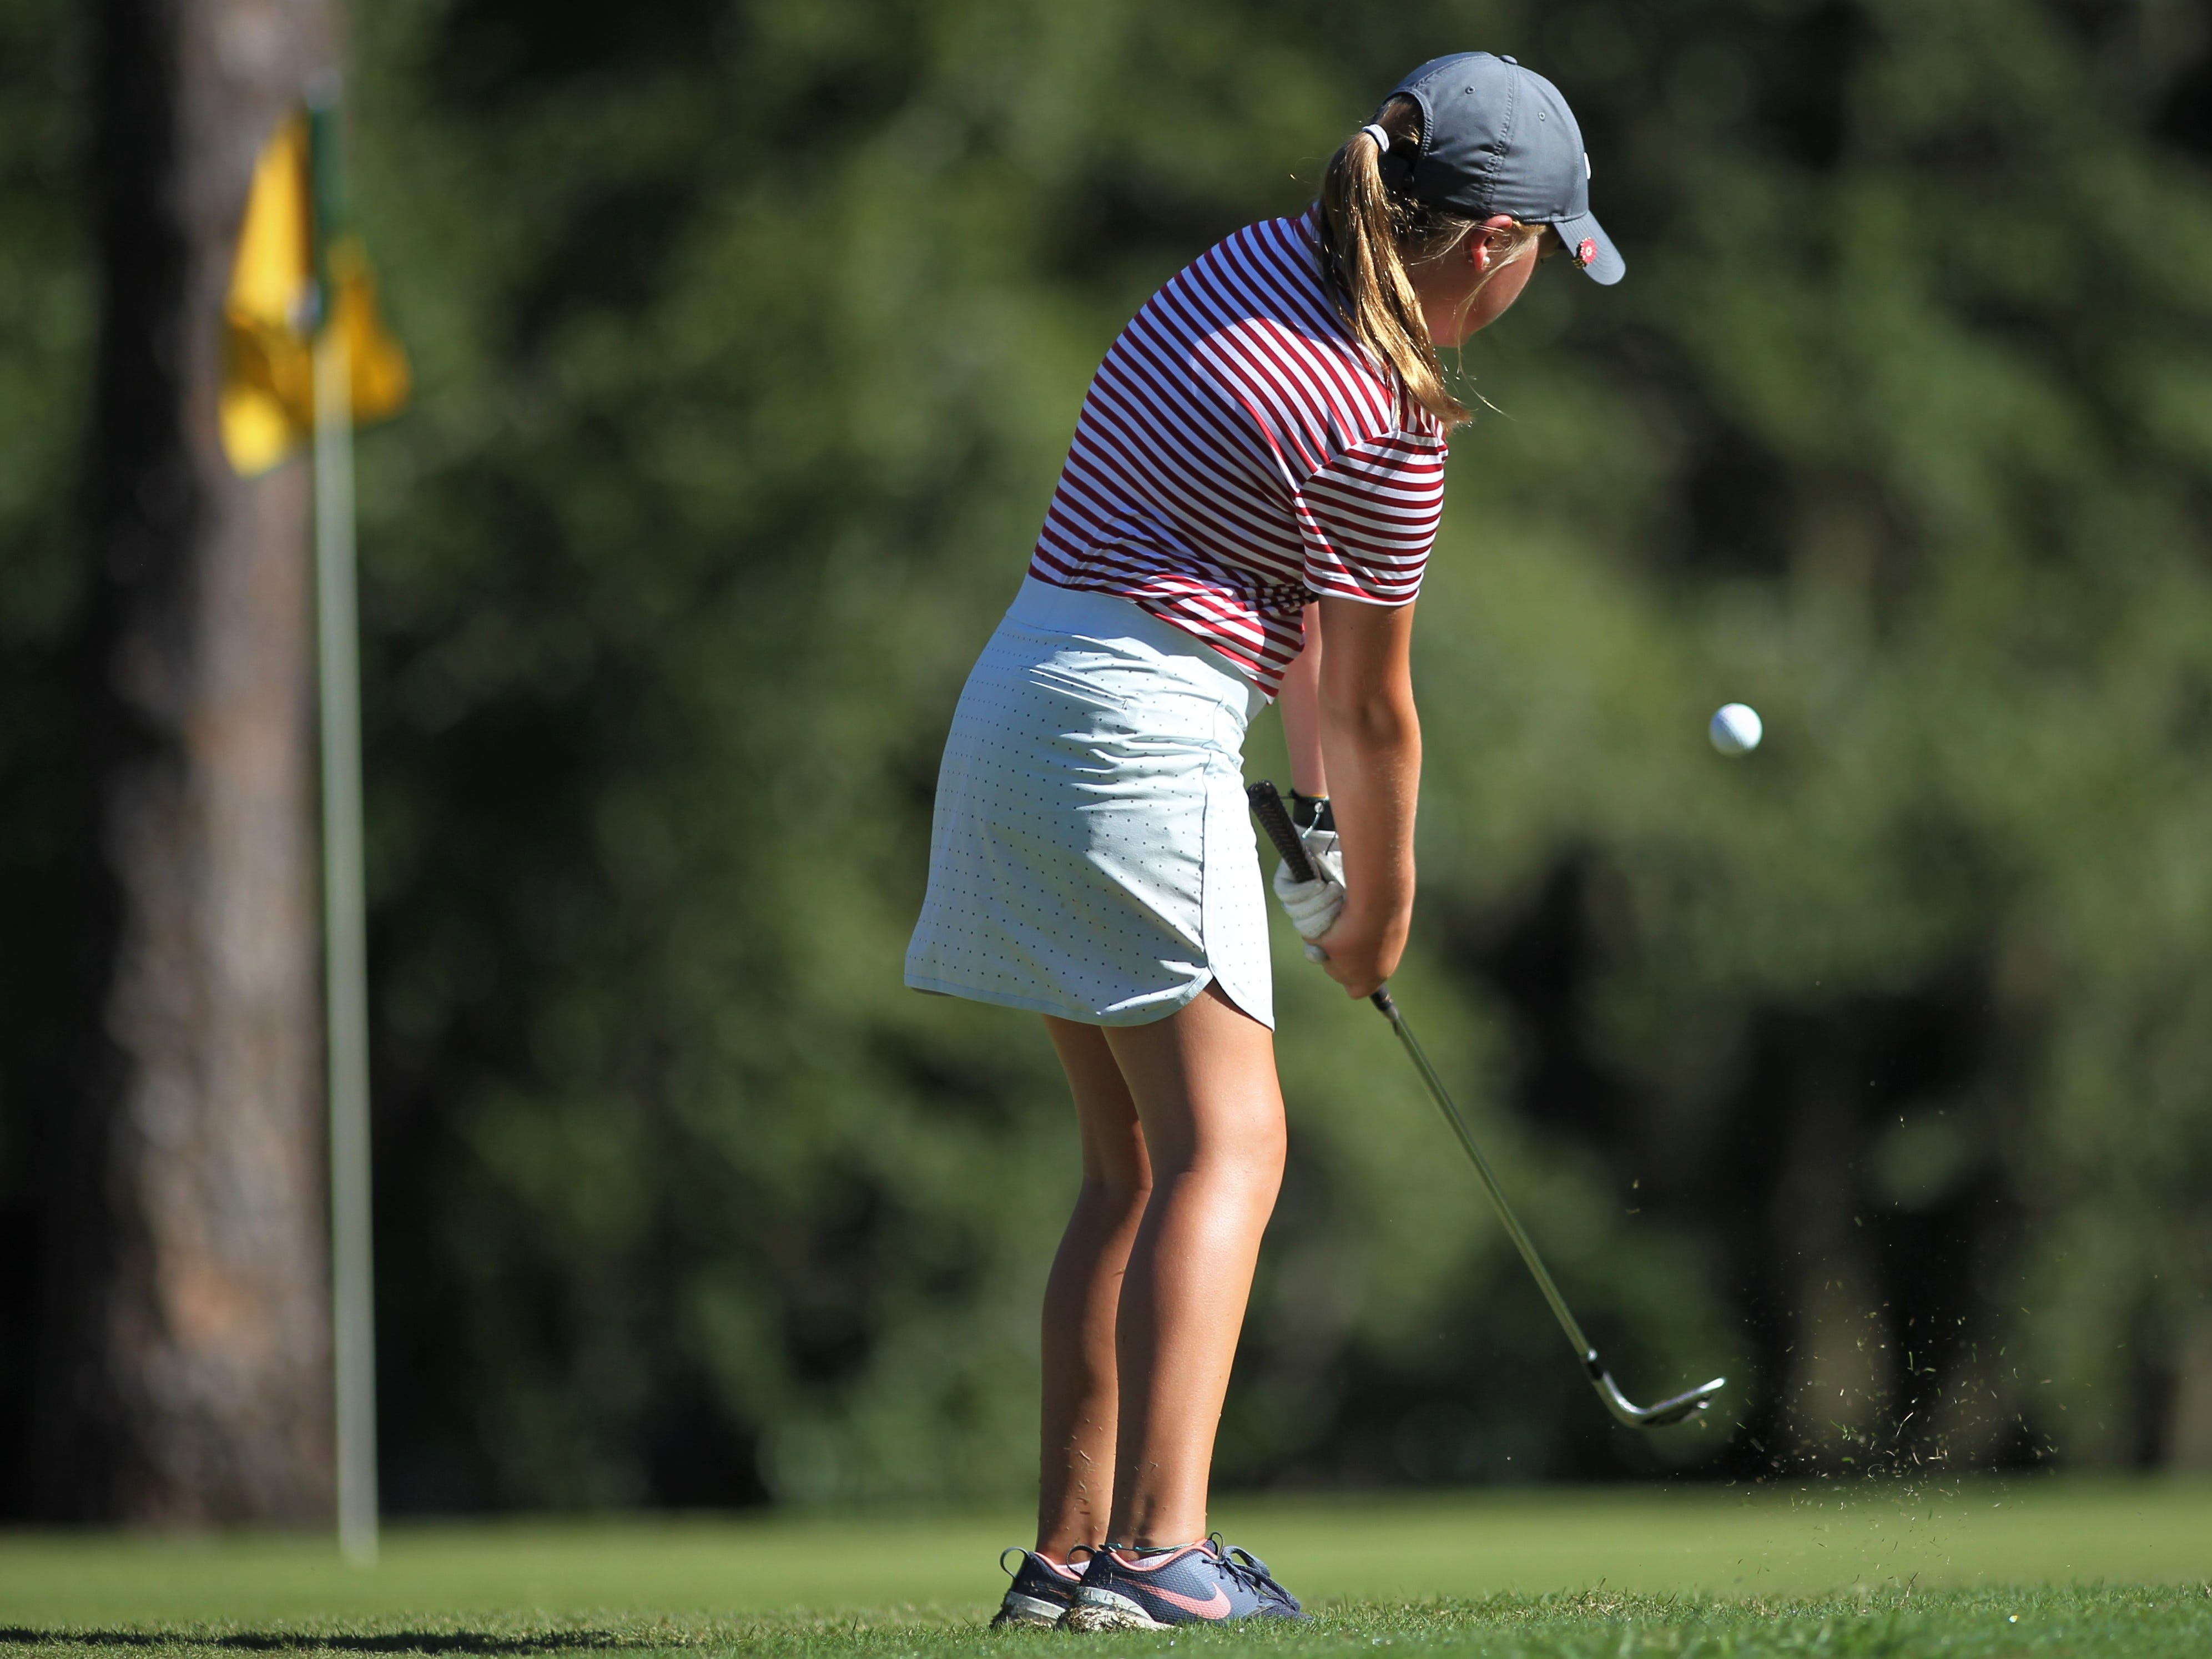 Munroe seventh-grader Ellie Jane Riner plays in the girls golf Panhandle Invitational at Killearn Country Club, Oct. 4, 2018.